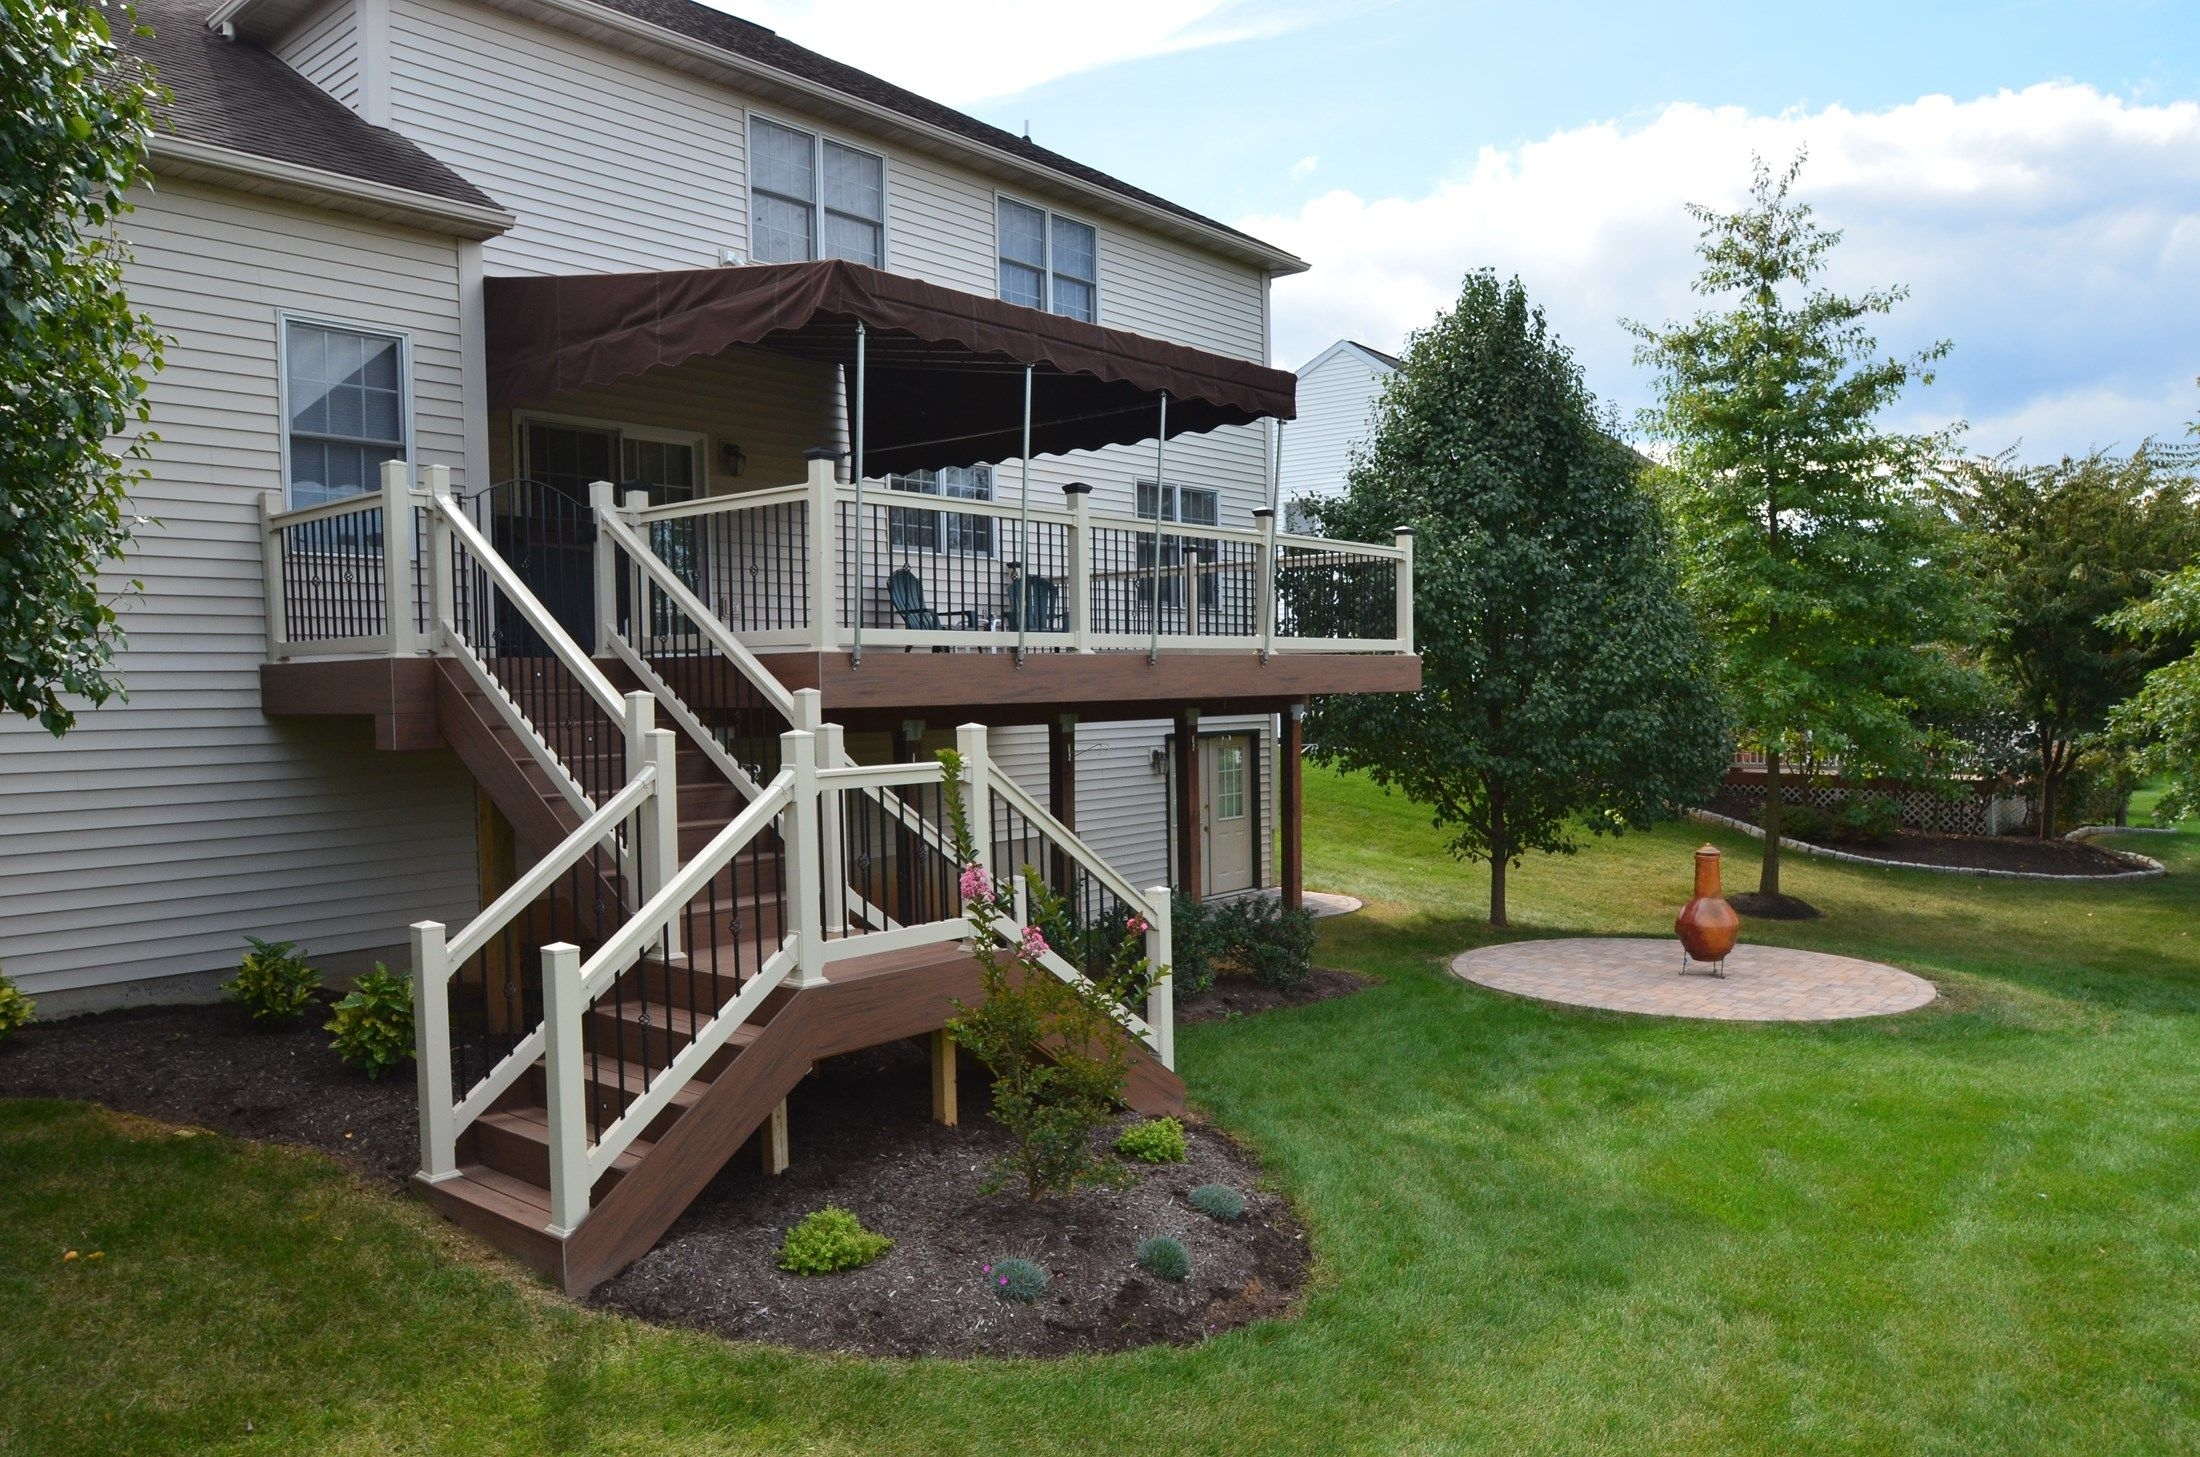 Second Story Deck Ideas Designs Pictures Page 2 Decks Com | Two Story Deck Stair Designs | Building | Modern | House | Decking | Split Level